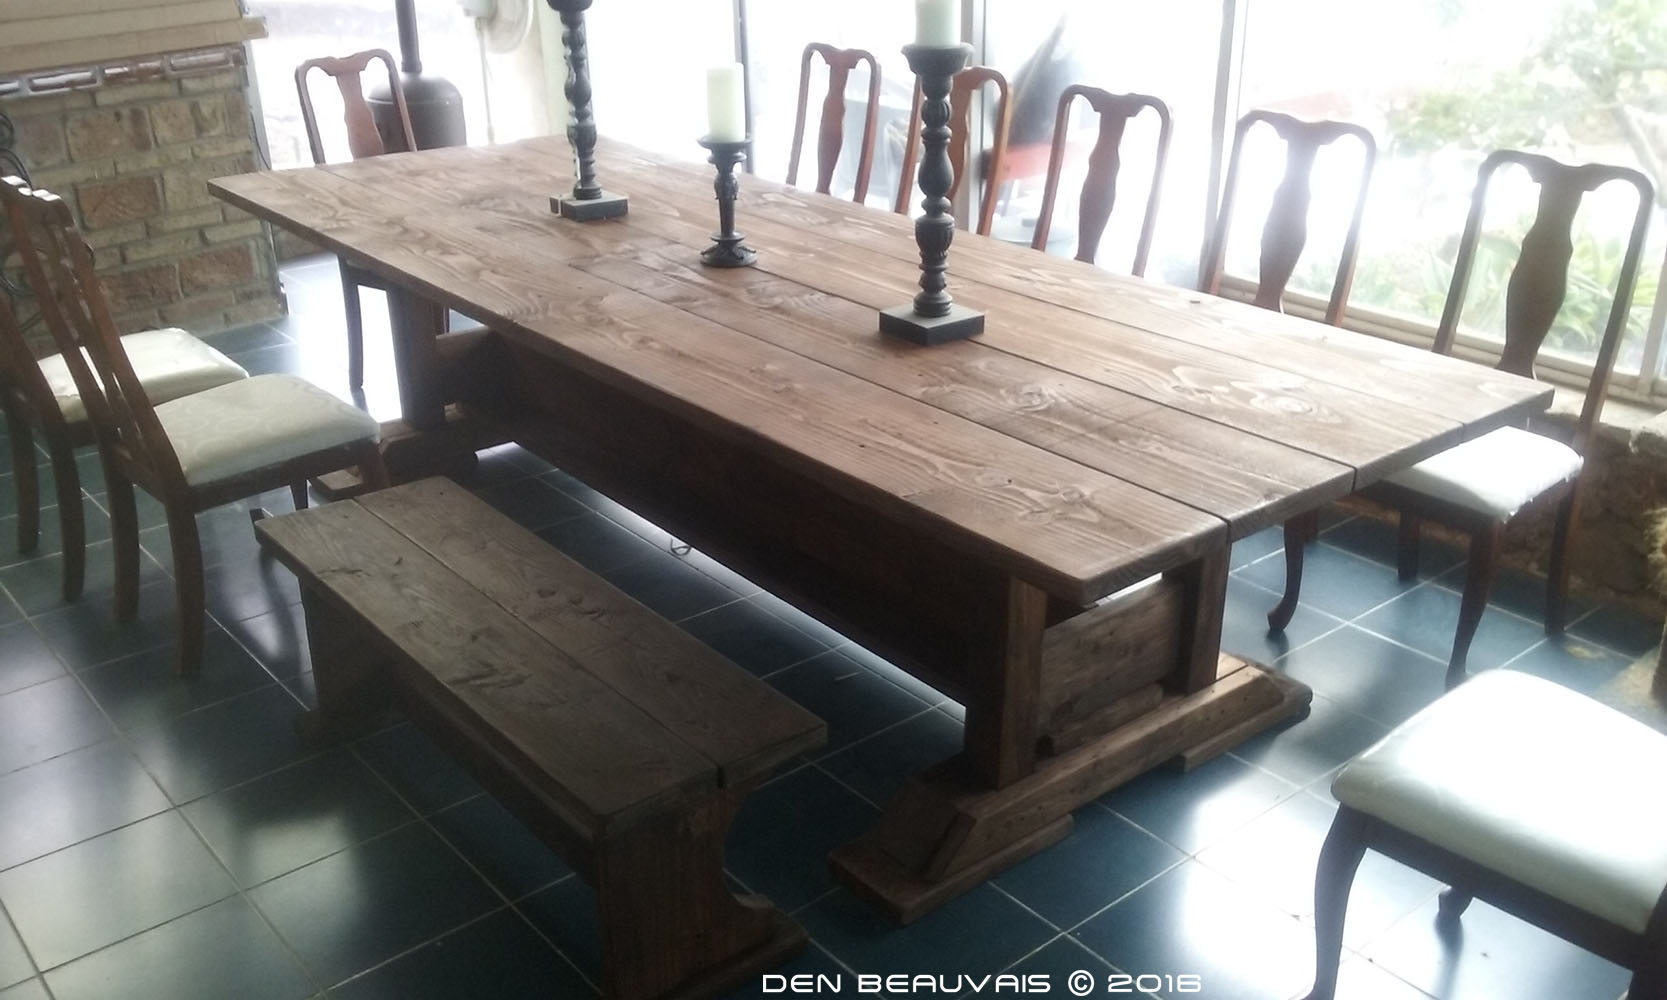 den beauvais - medieval table project